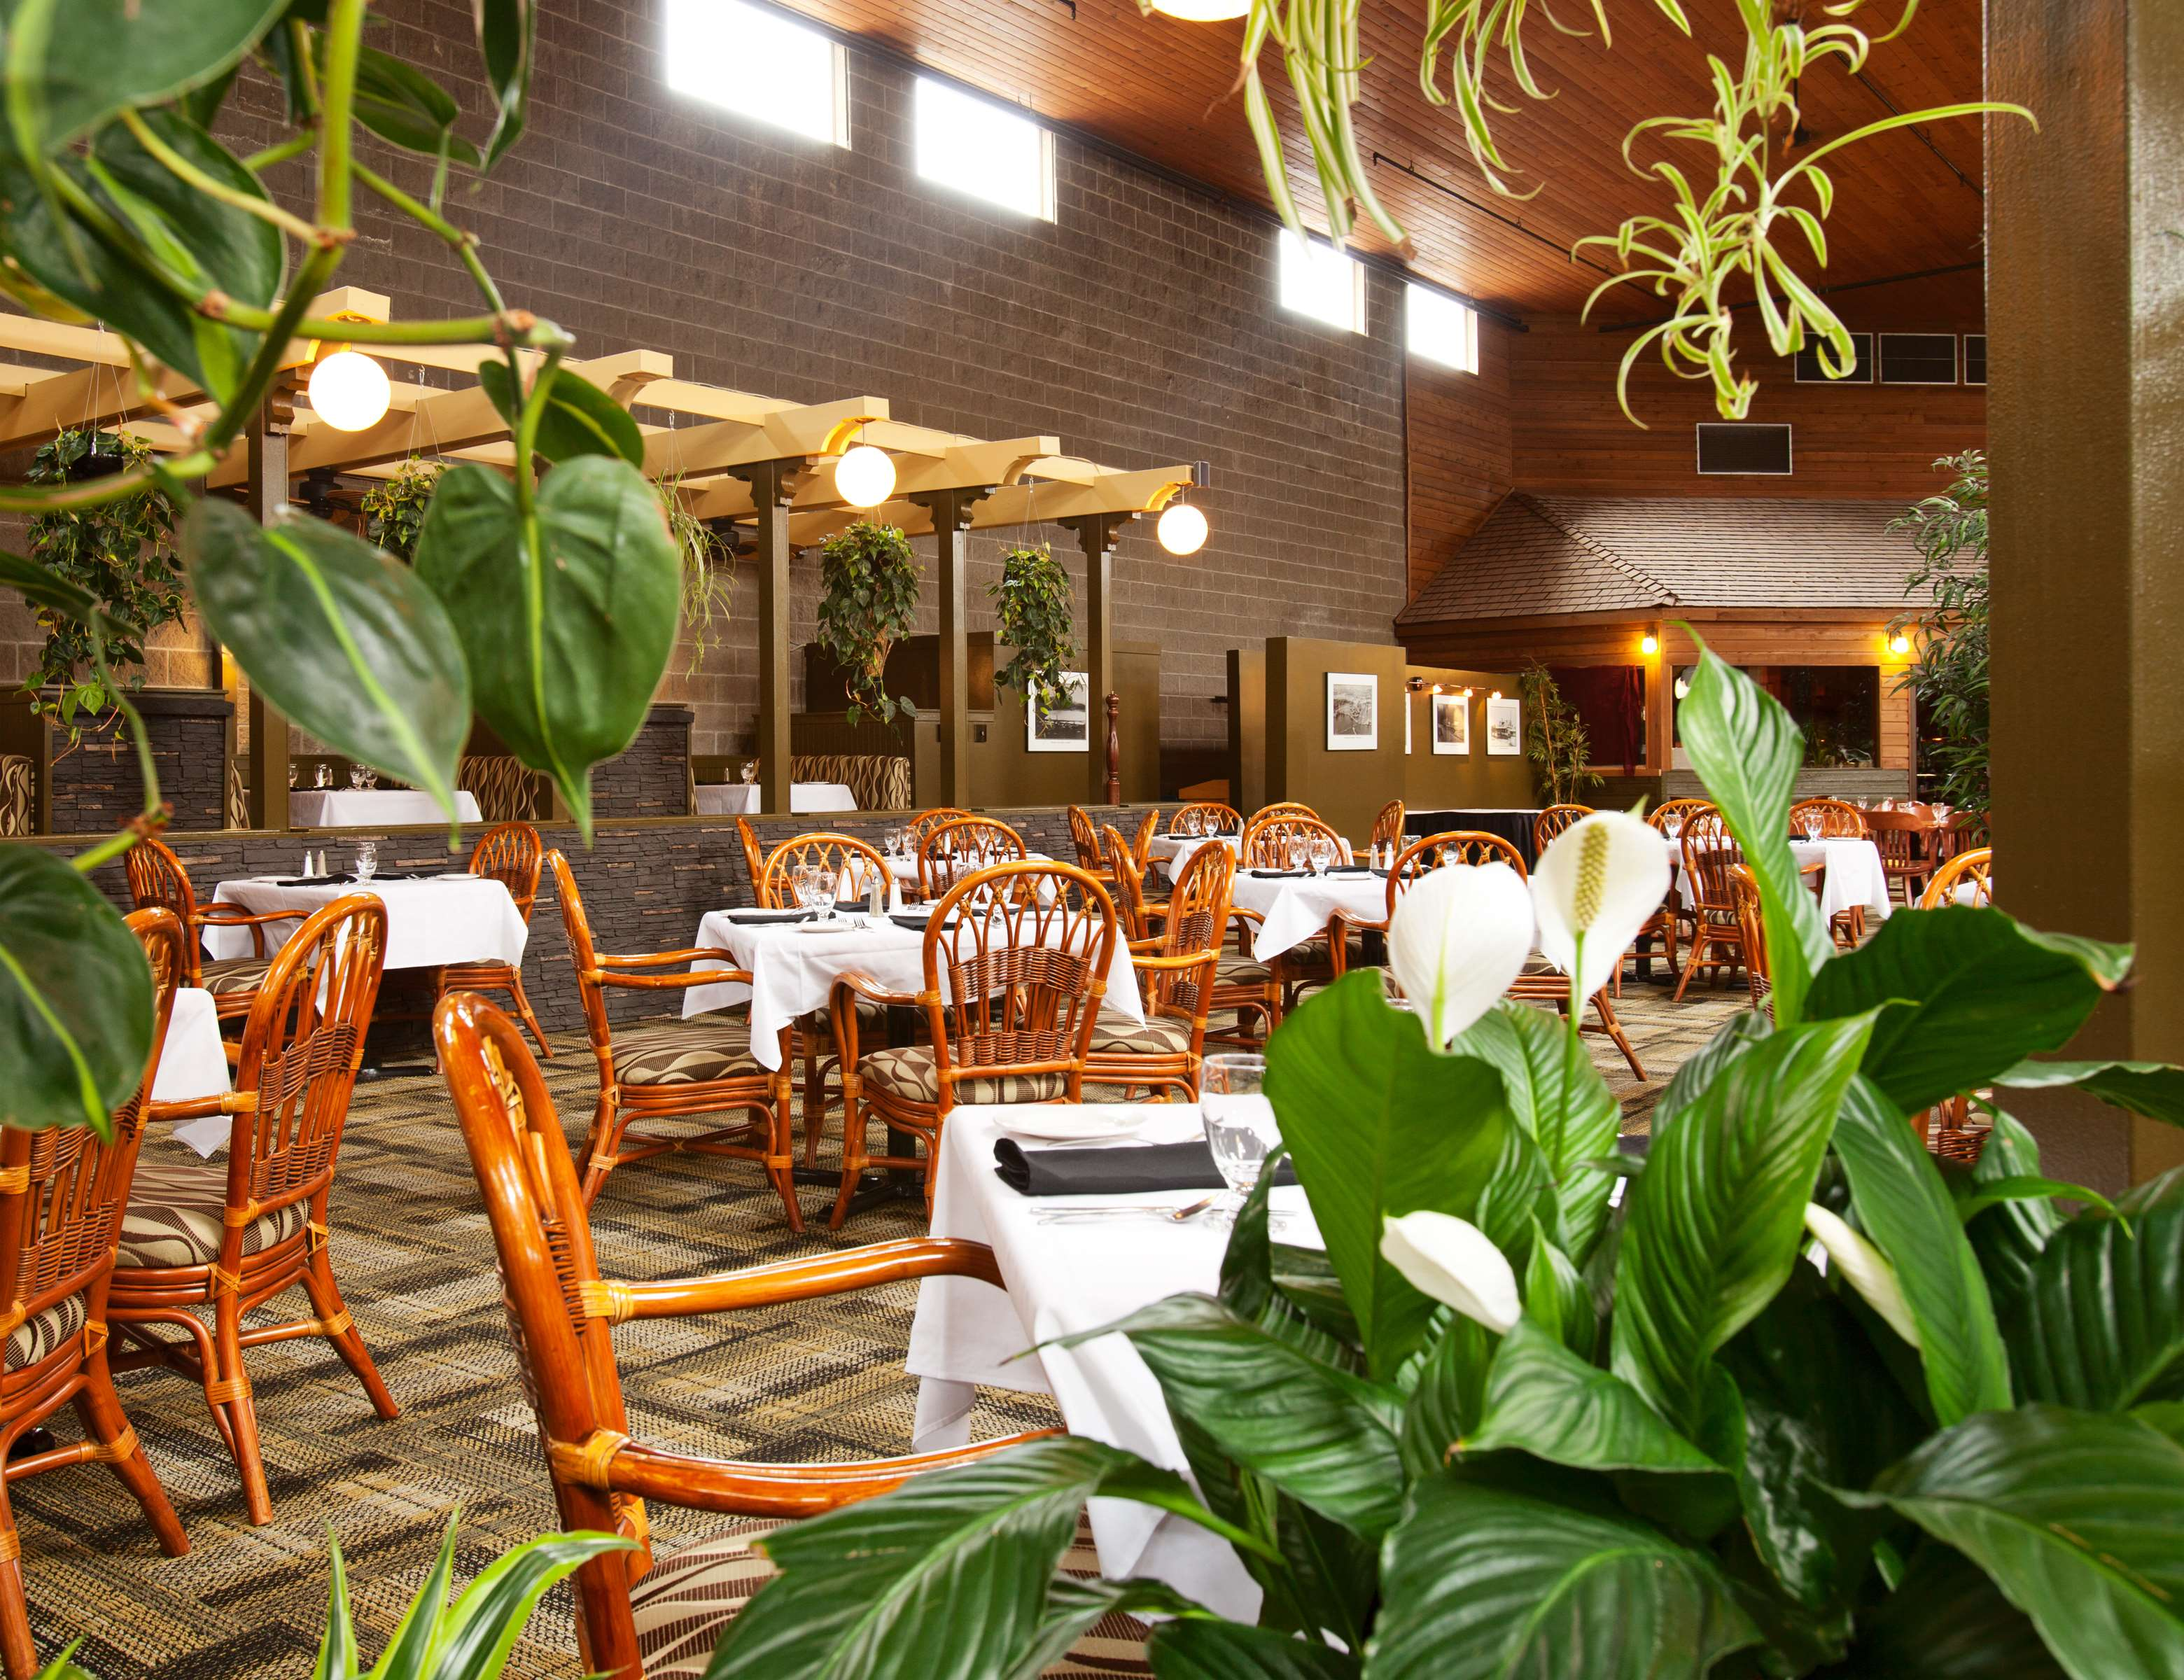 Best Western Rainbow Country Inn in Chilliwack: Family Restaurant in Tropical Atrium